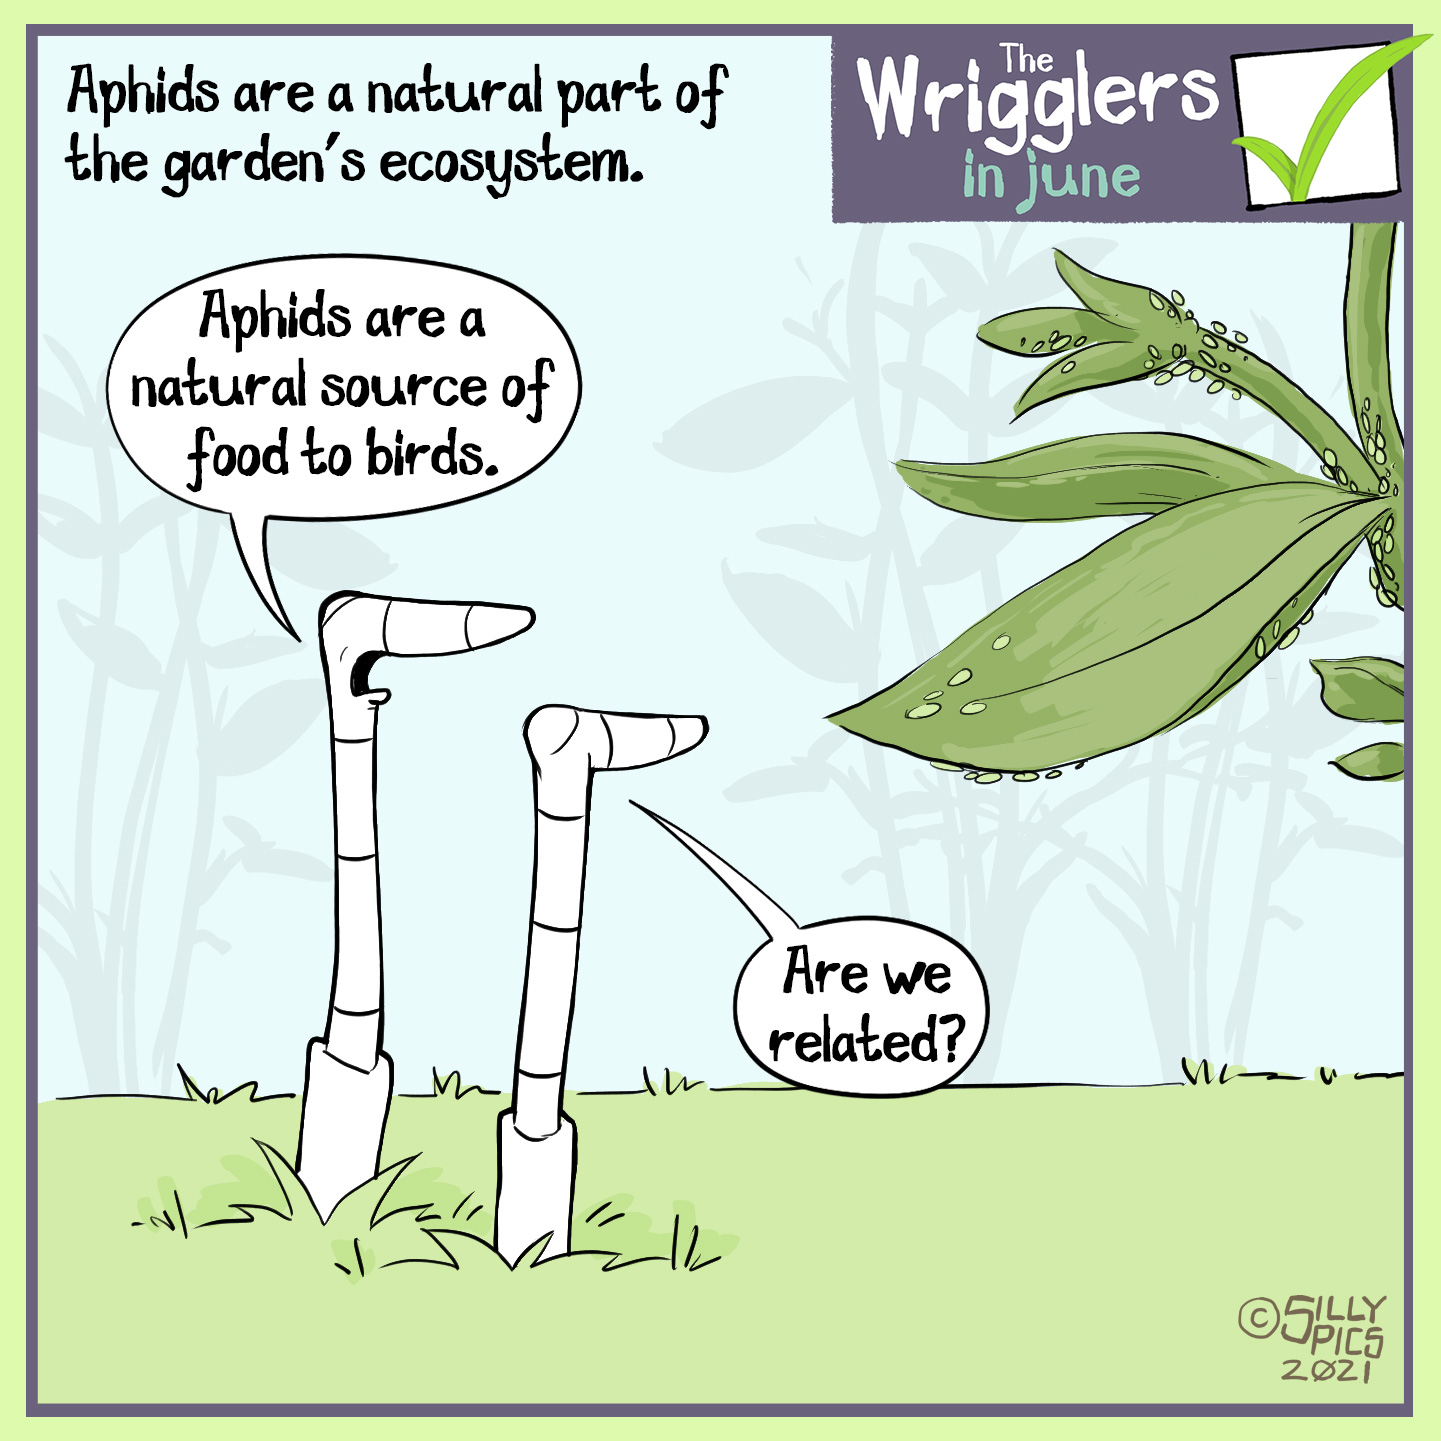 """The cartoon headline says, """"Aphids are a natural part of the garden's ecosystem"""" The cartoon shows two worms looking at a plant with aphids on it. One work says to the other, """" Aphids are a natural source of food to birds"""" The other worm, looking at the aphids, asks, """"Are we related? #putpollinatorsfirst"""